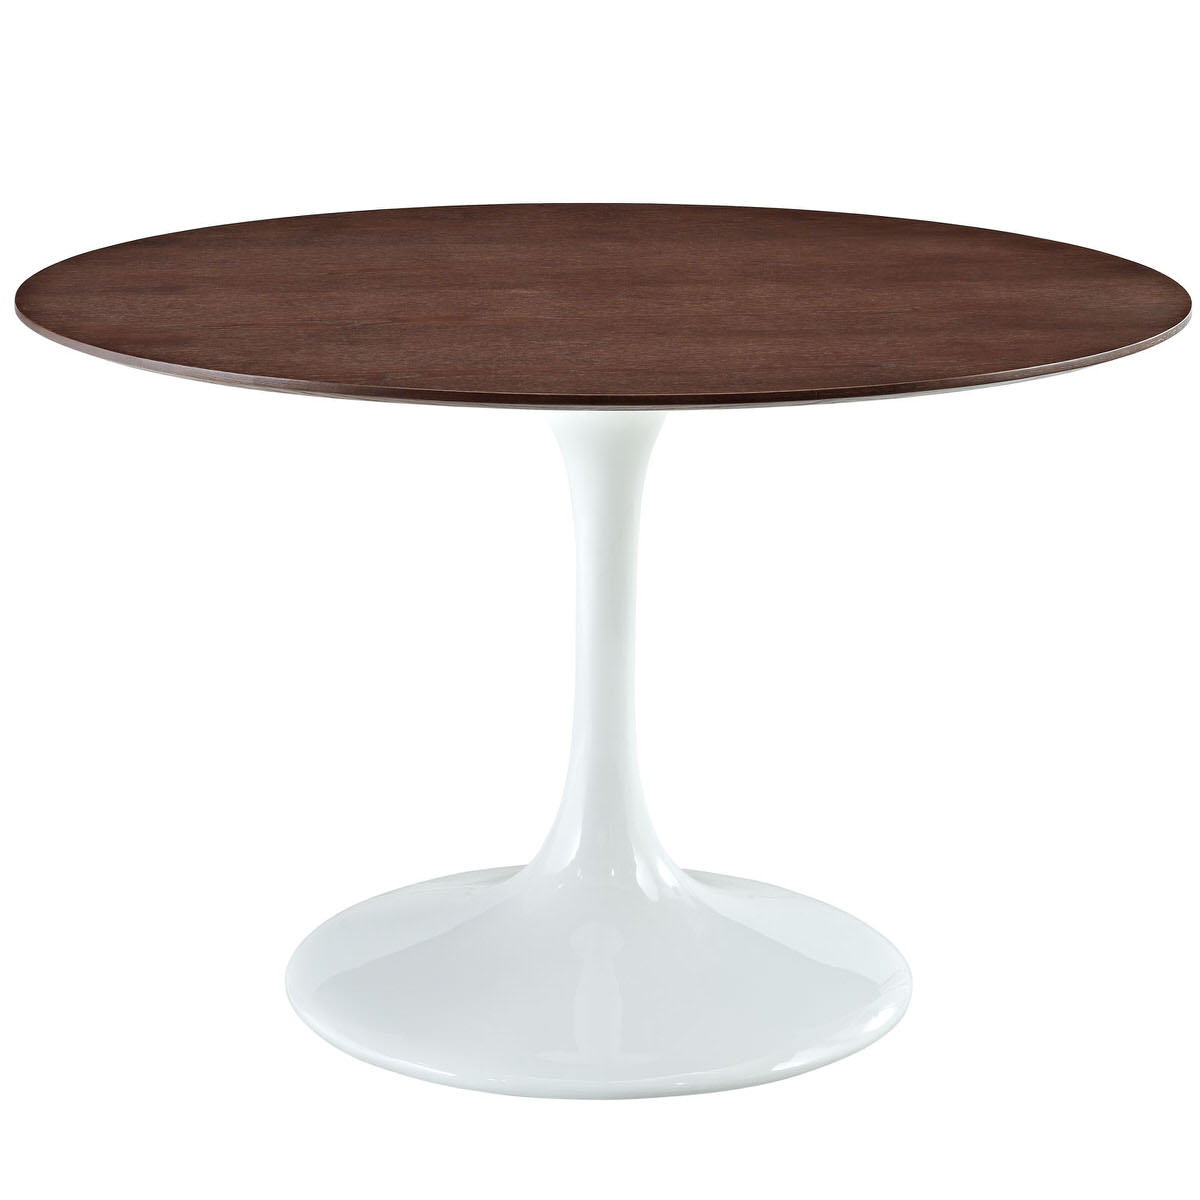 Lippa Inch Round Walnut Dining Table White By Modern Living - 48 inch round white dining table